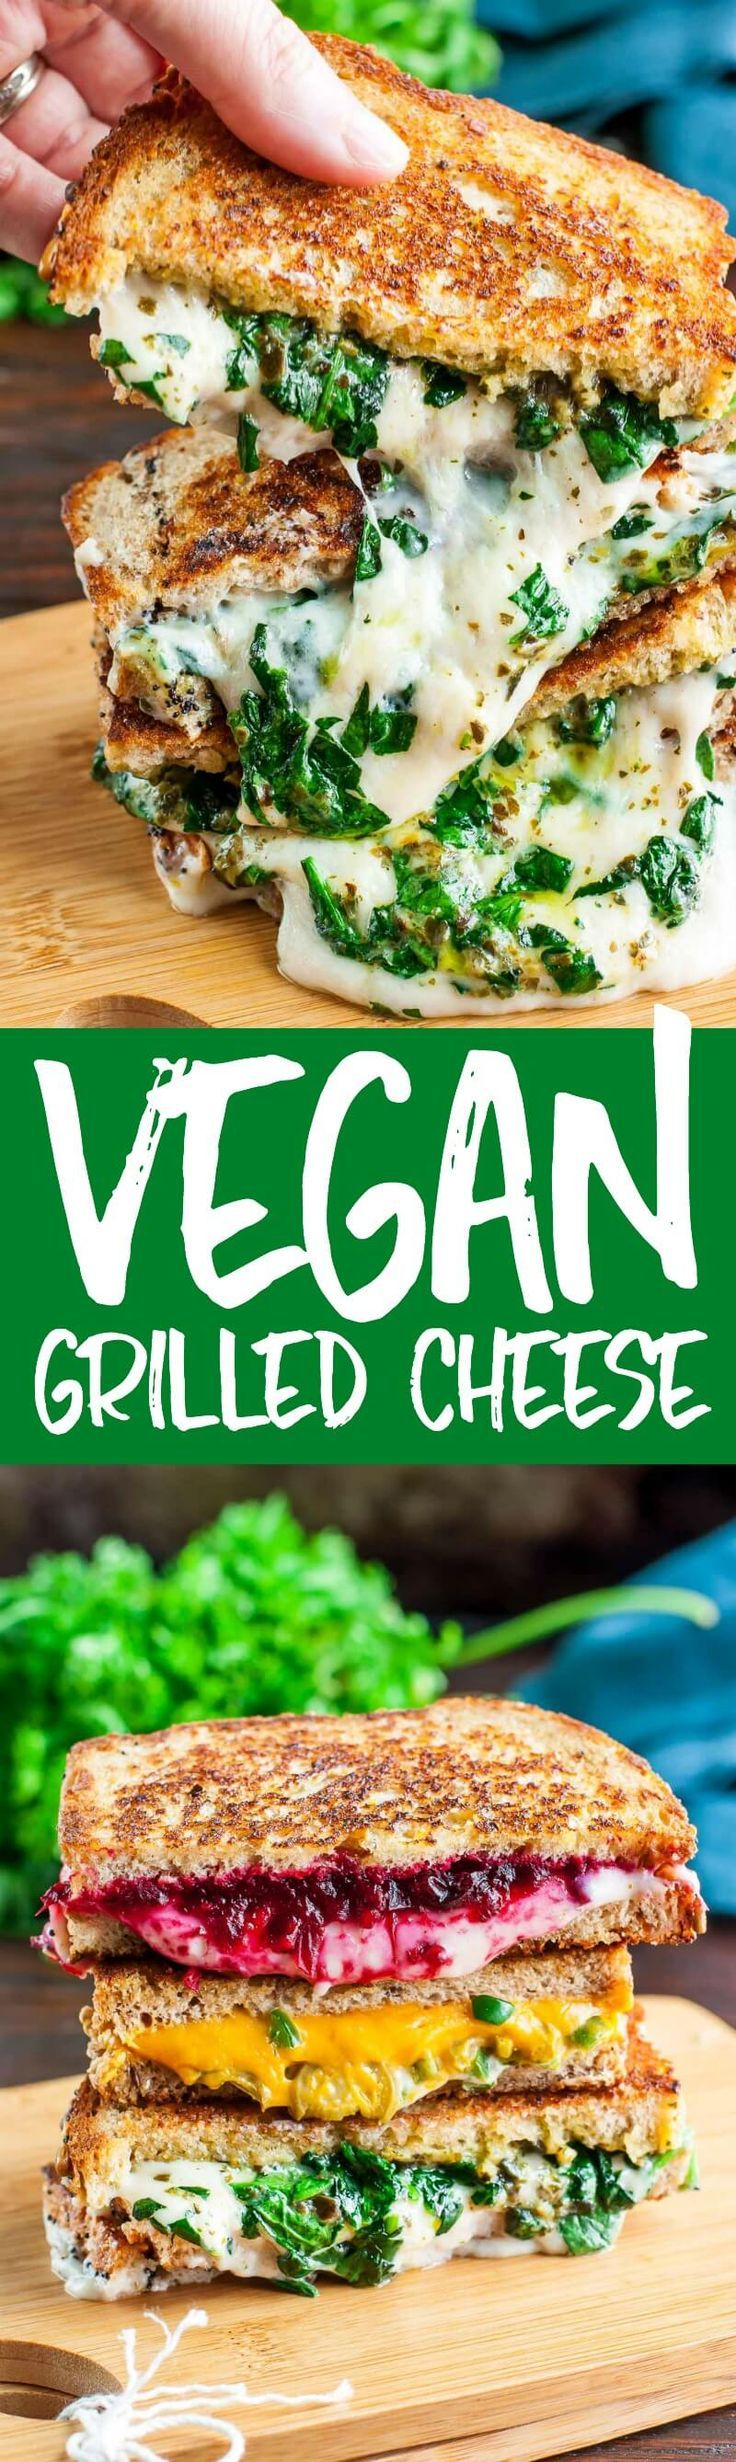 Vegan Grilled Cheese Recipes Swiss Pesto, Jalapeño Popper Cheddar, Cranberry Pecan Provolone